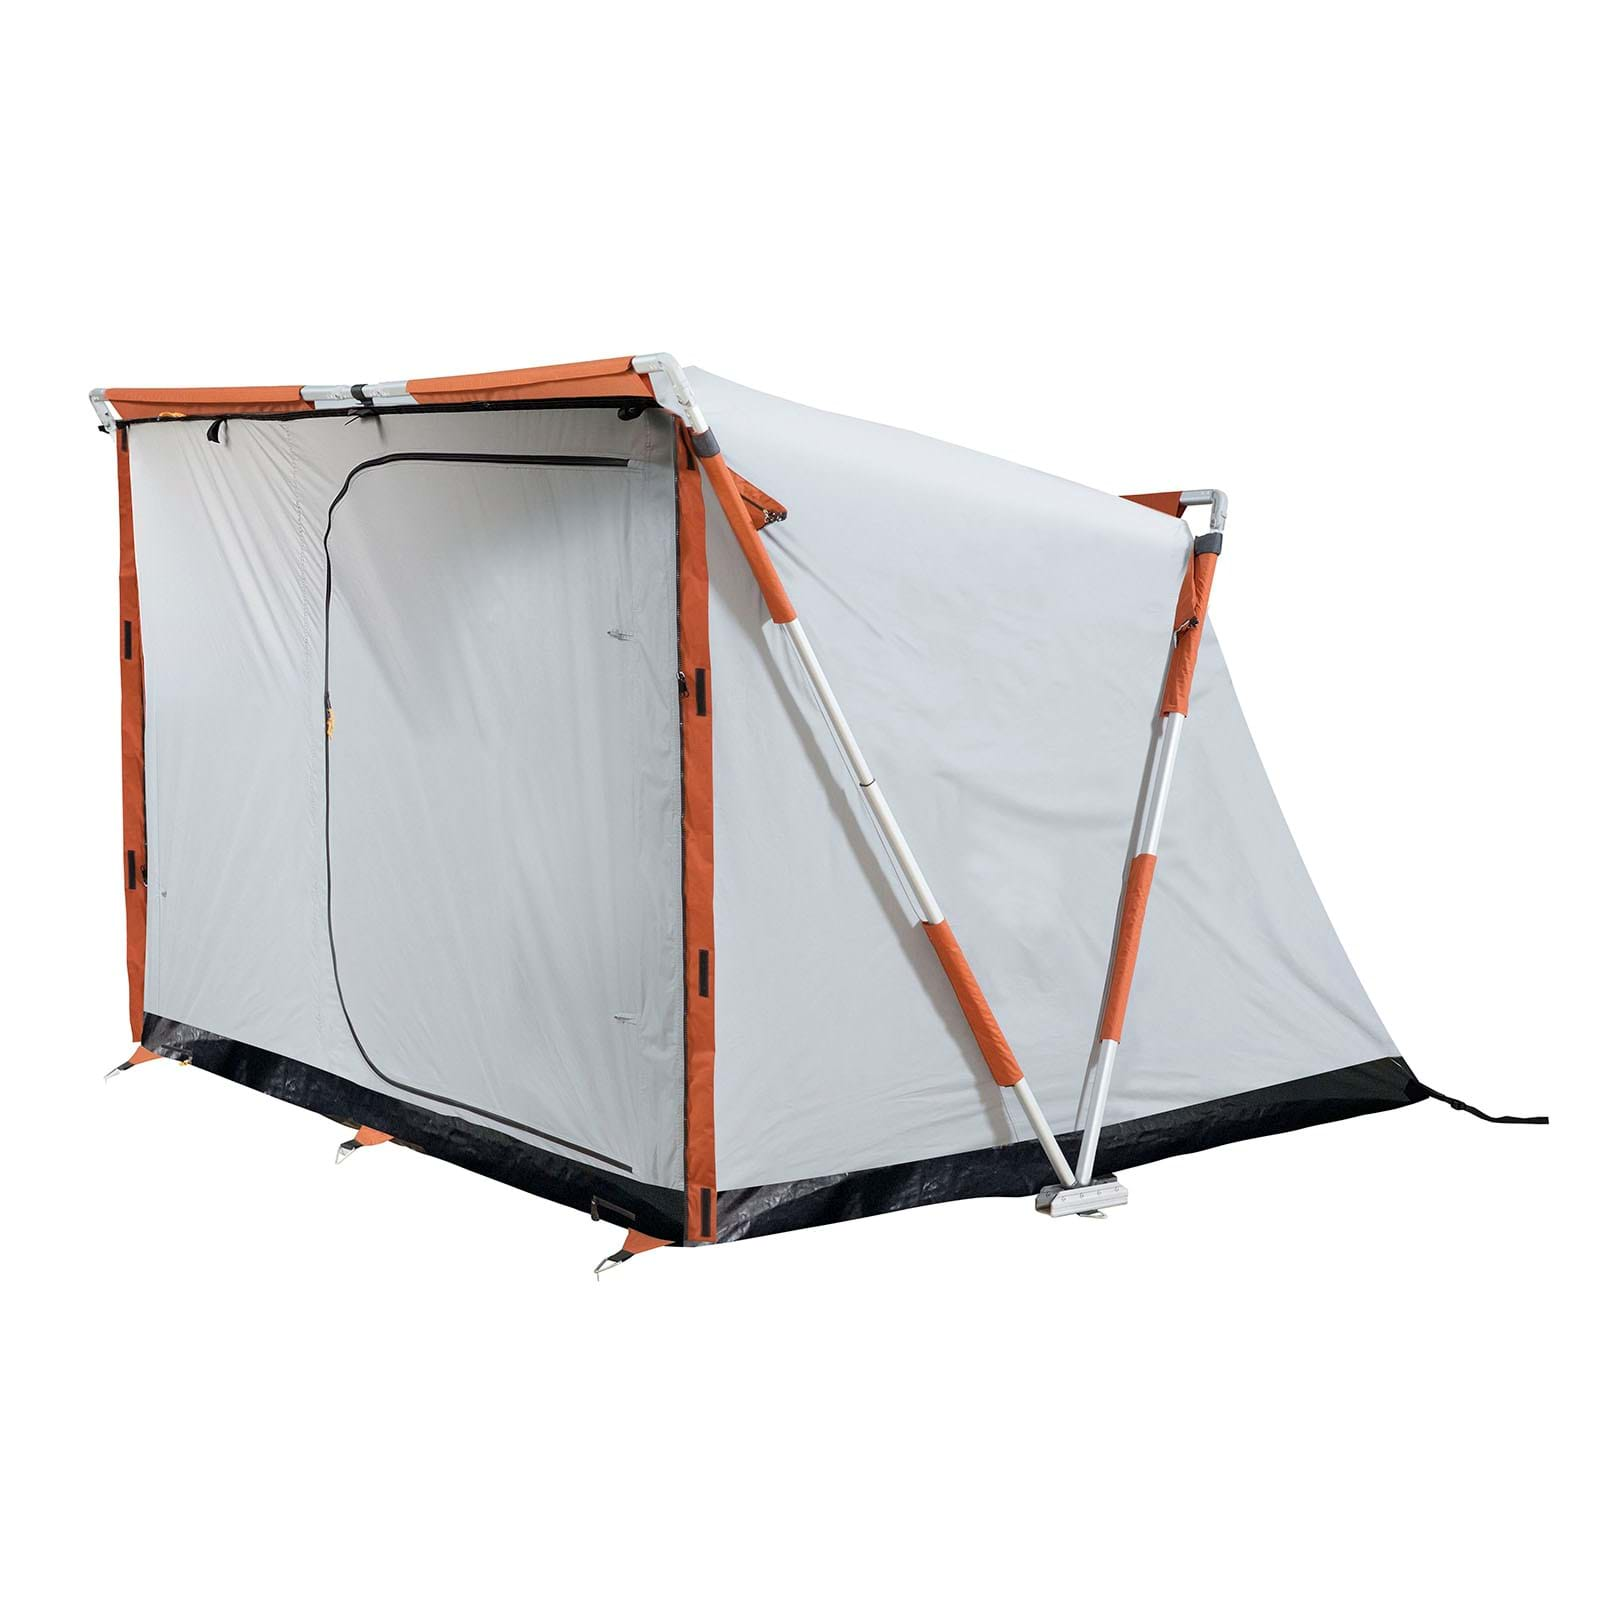 4Wd Awning Tent pop up 4wd awning easy touring tent | speedy earth edge